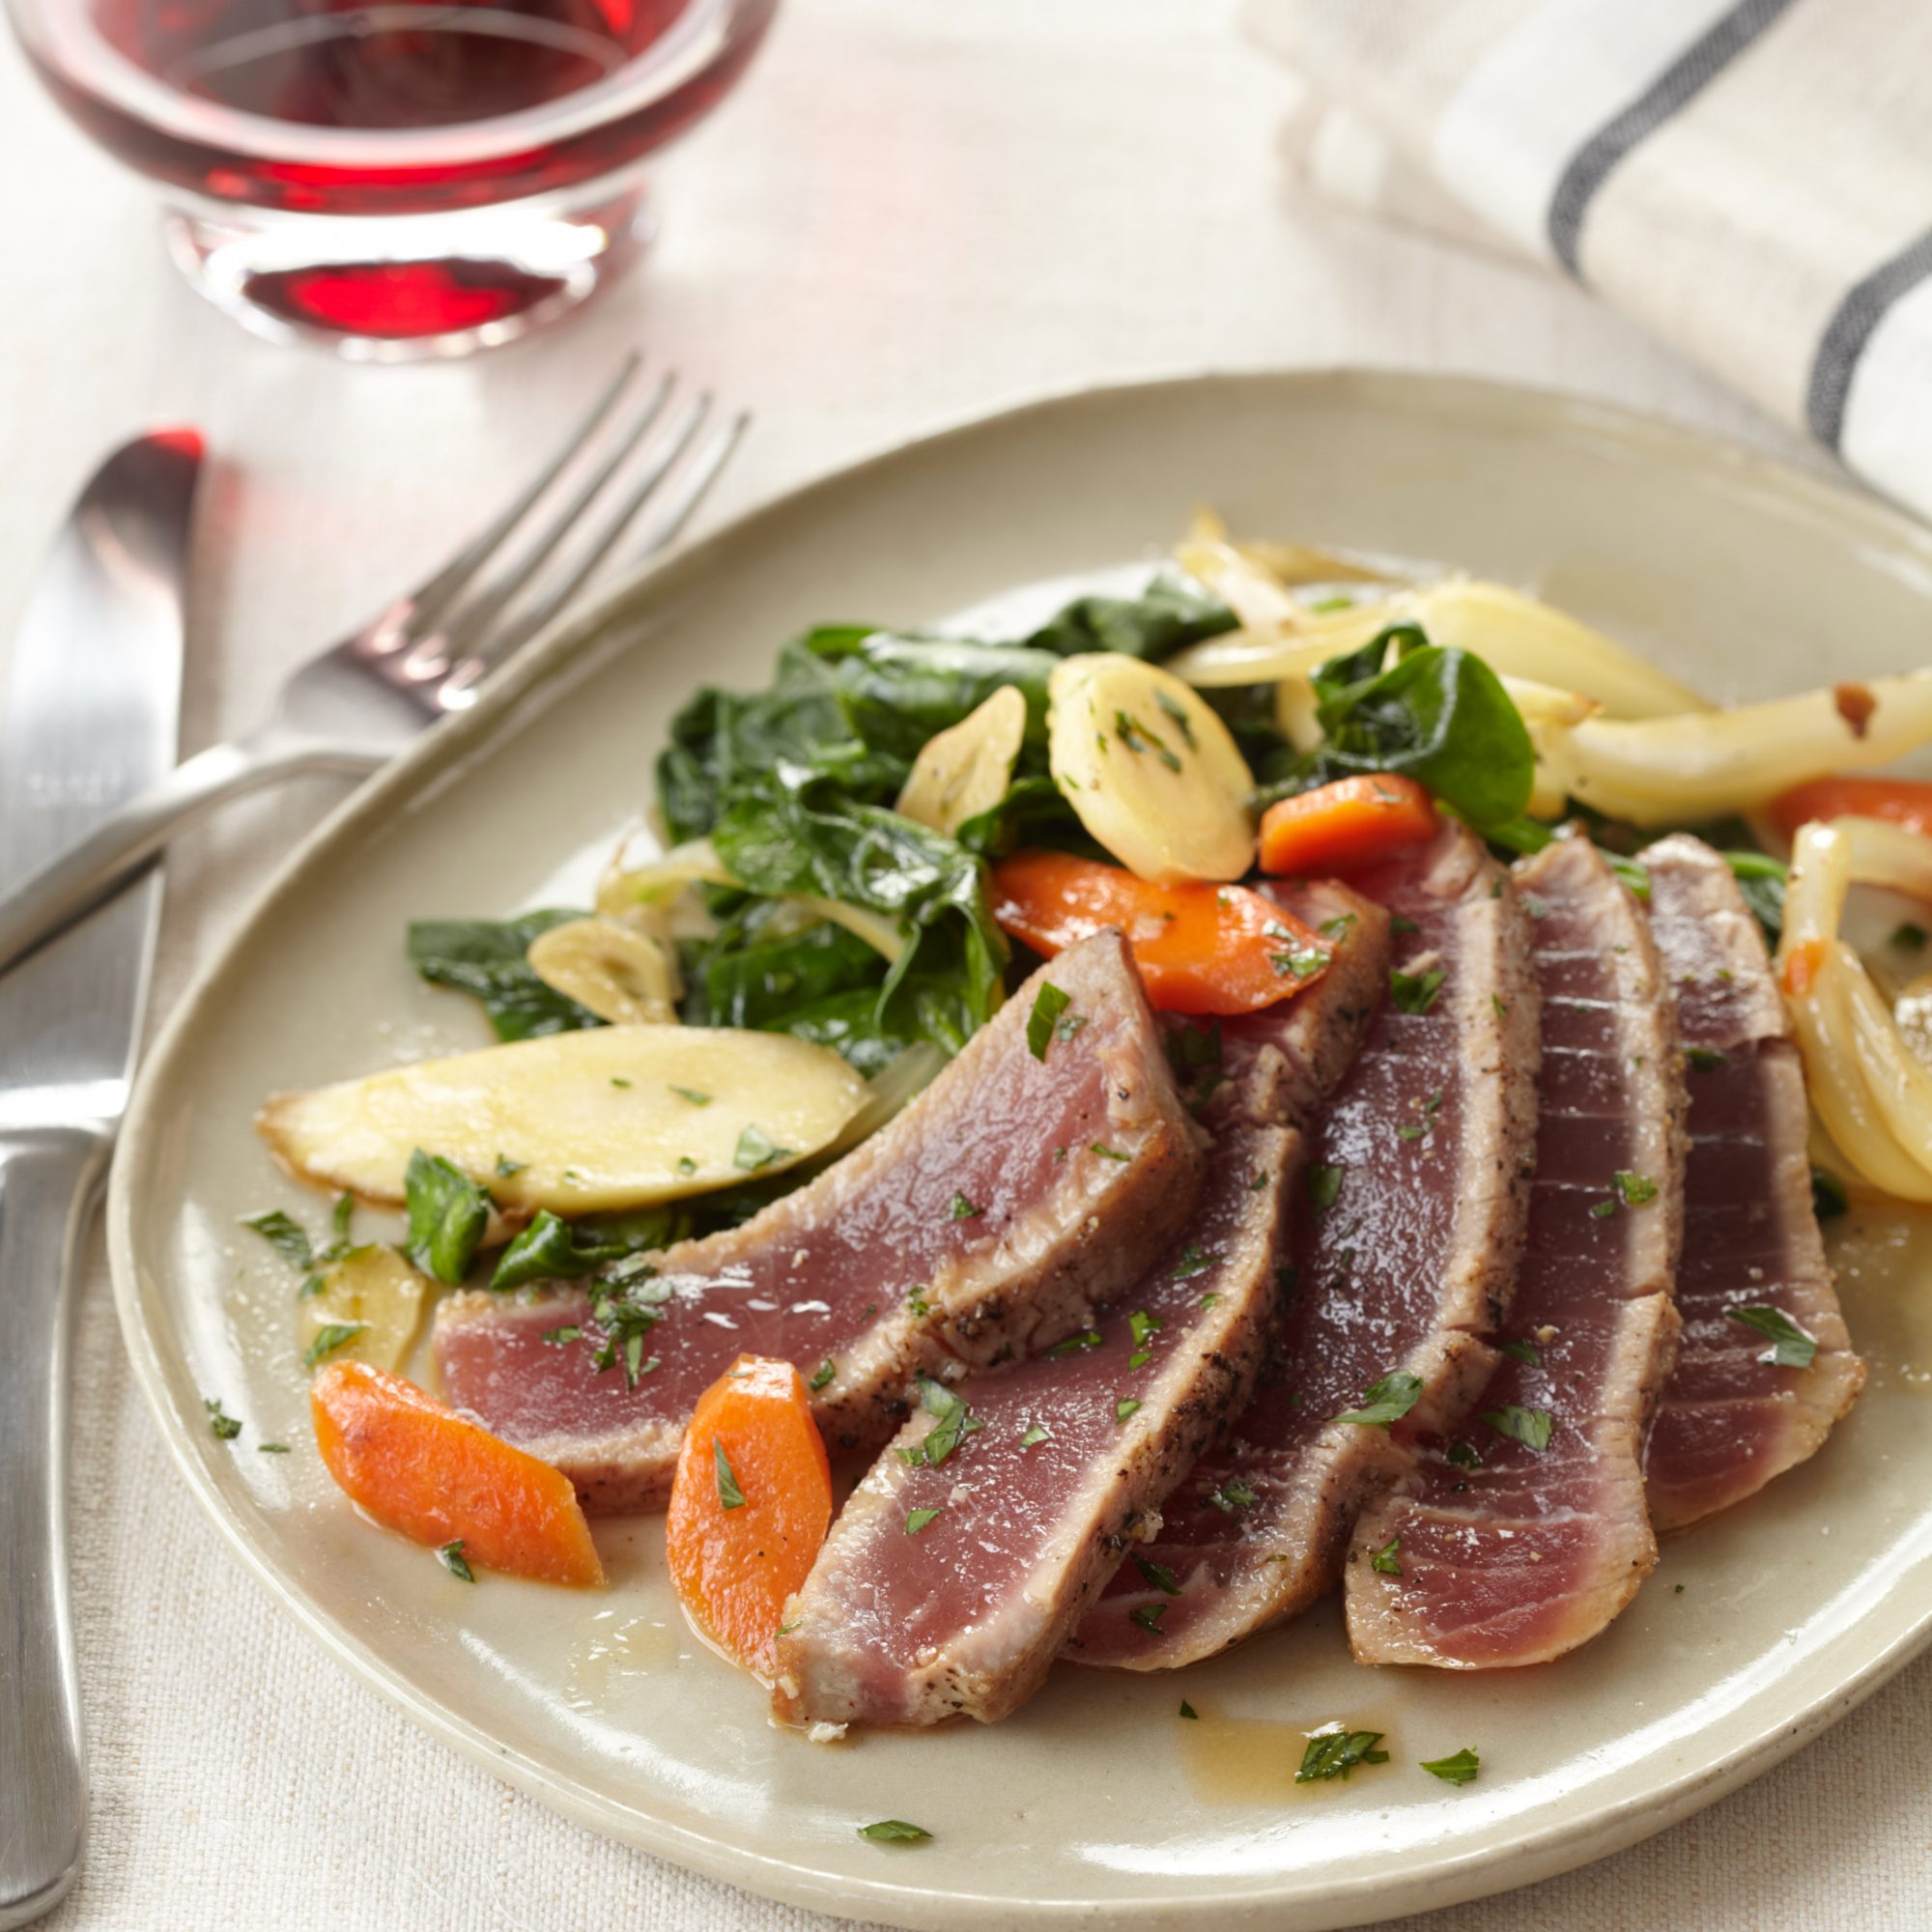 Seared Tuna with Spinach and Root Vegetables